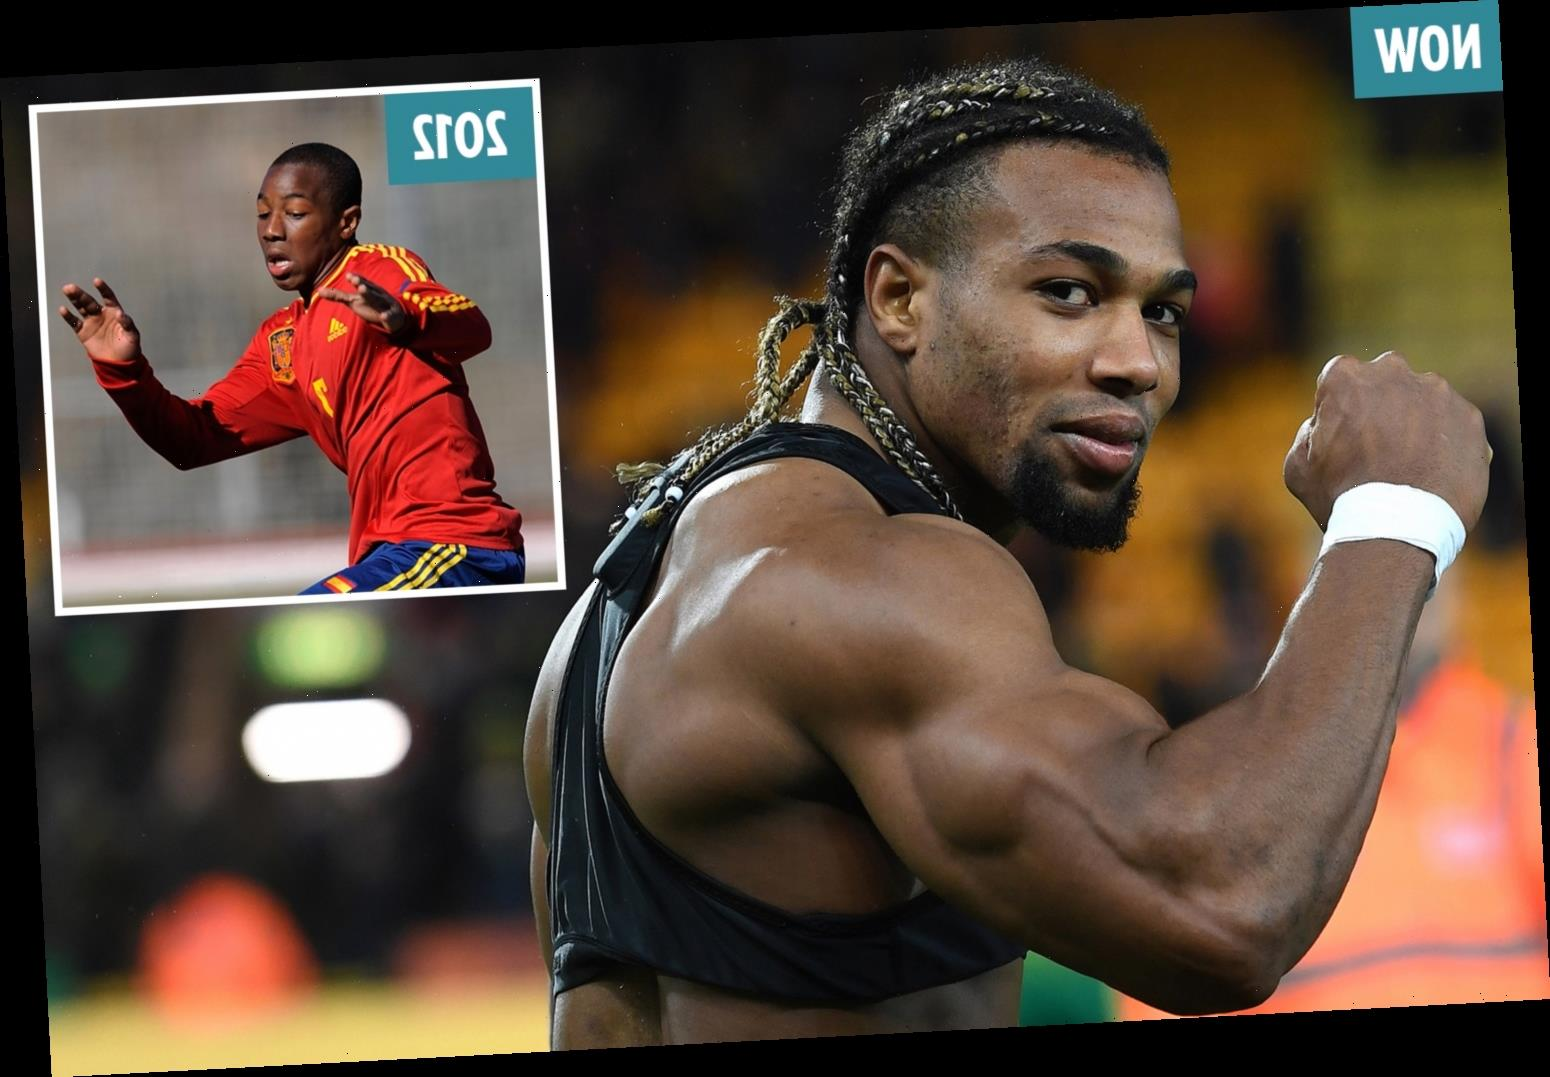 How Adama Traore Gained Incredible Ripped Physique Without Lifting A Single Weight The Sun Big World News